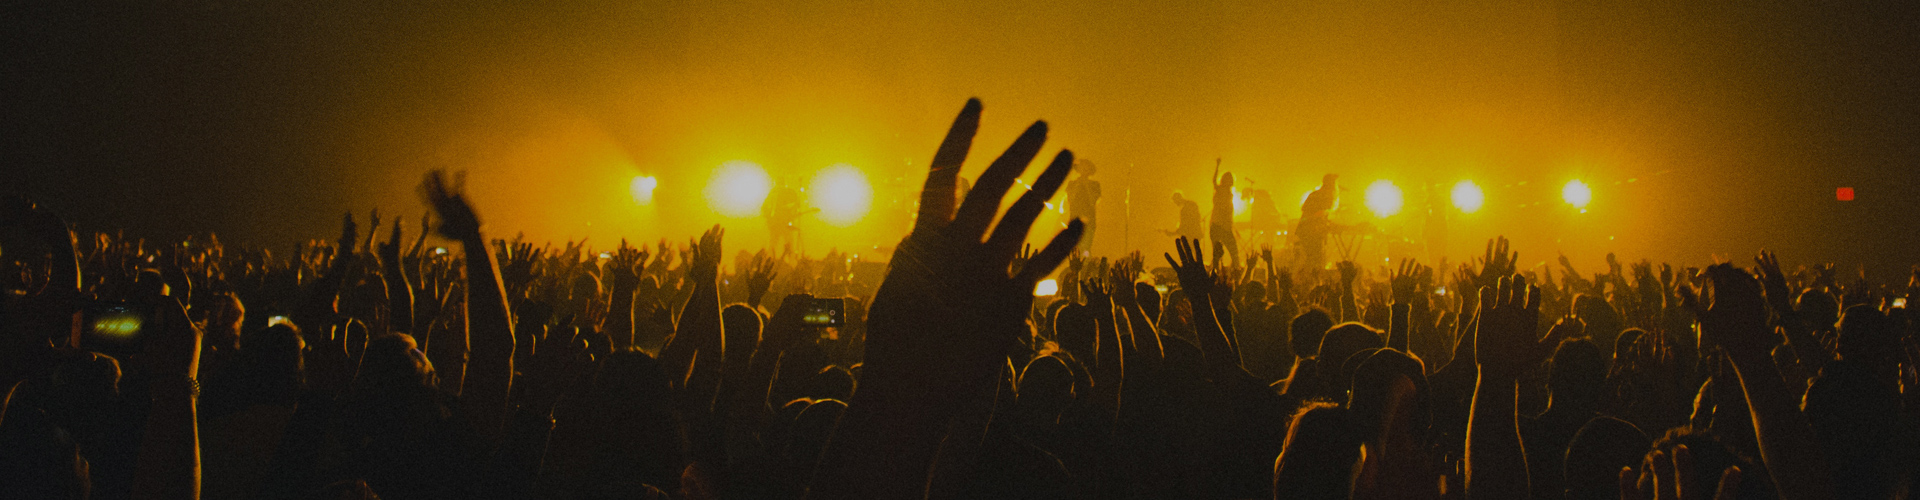 Hundreds of people with hands lifted at a concert.